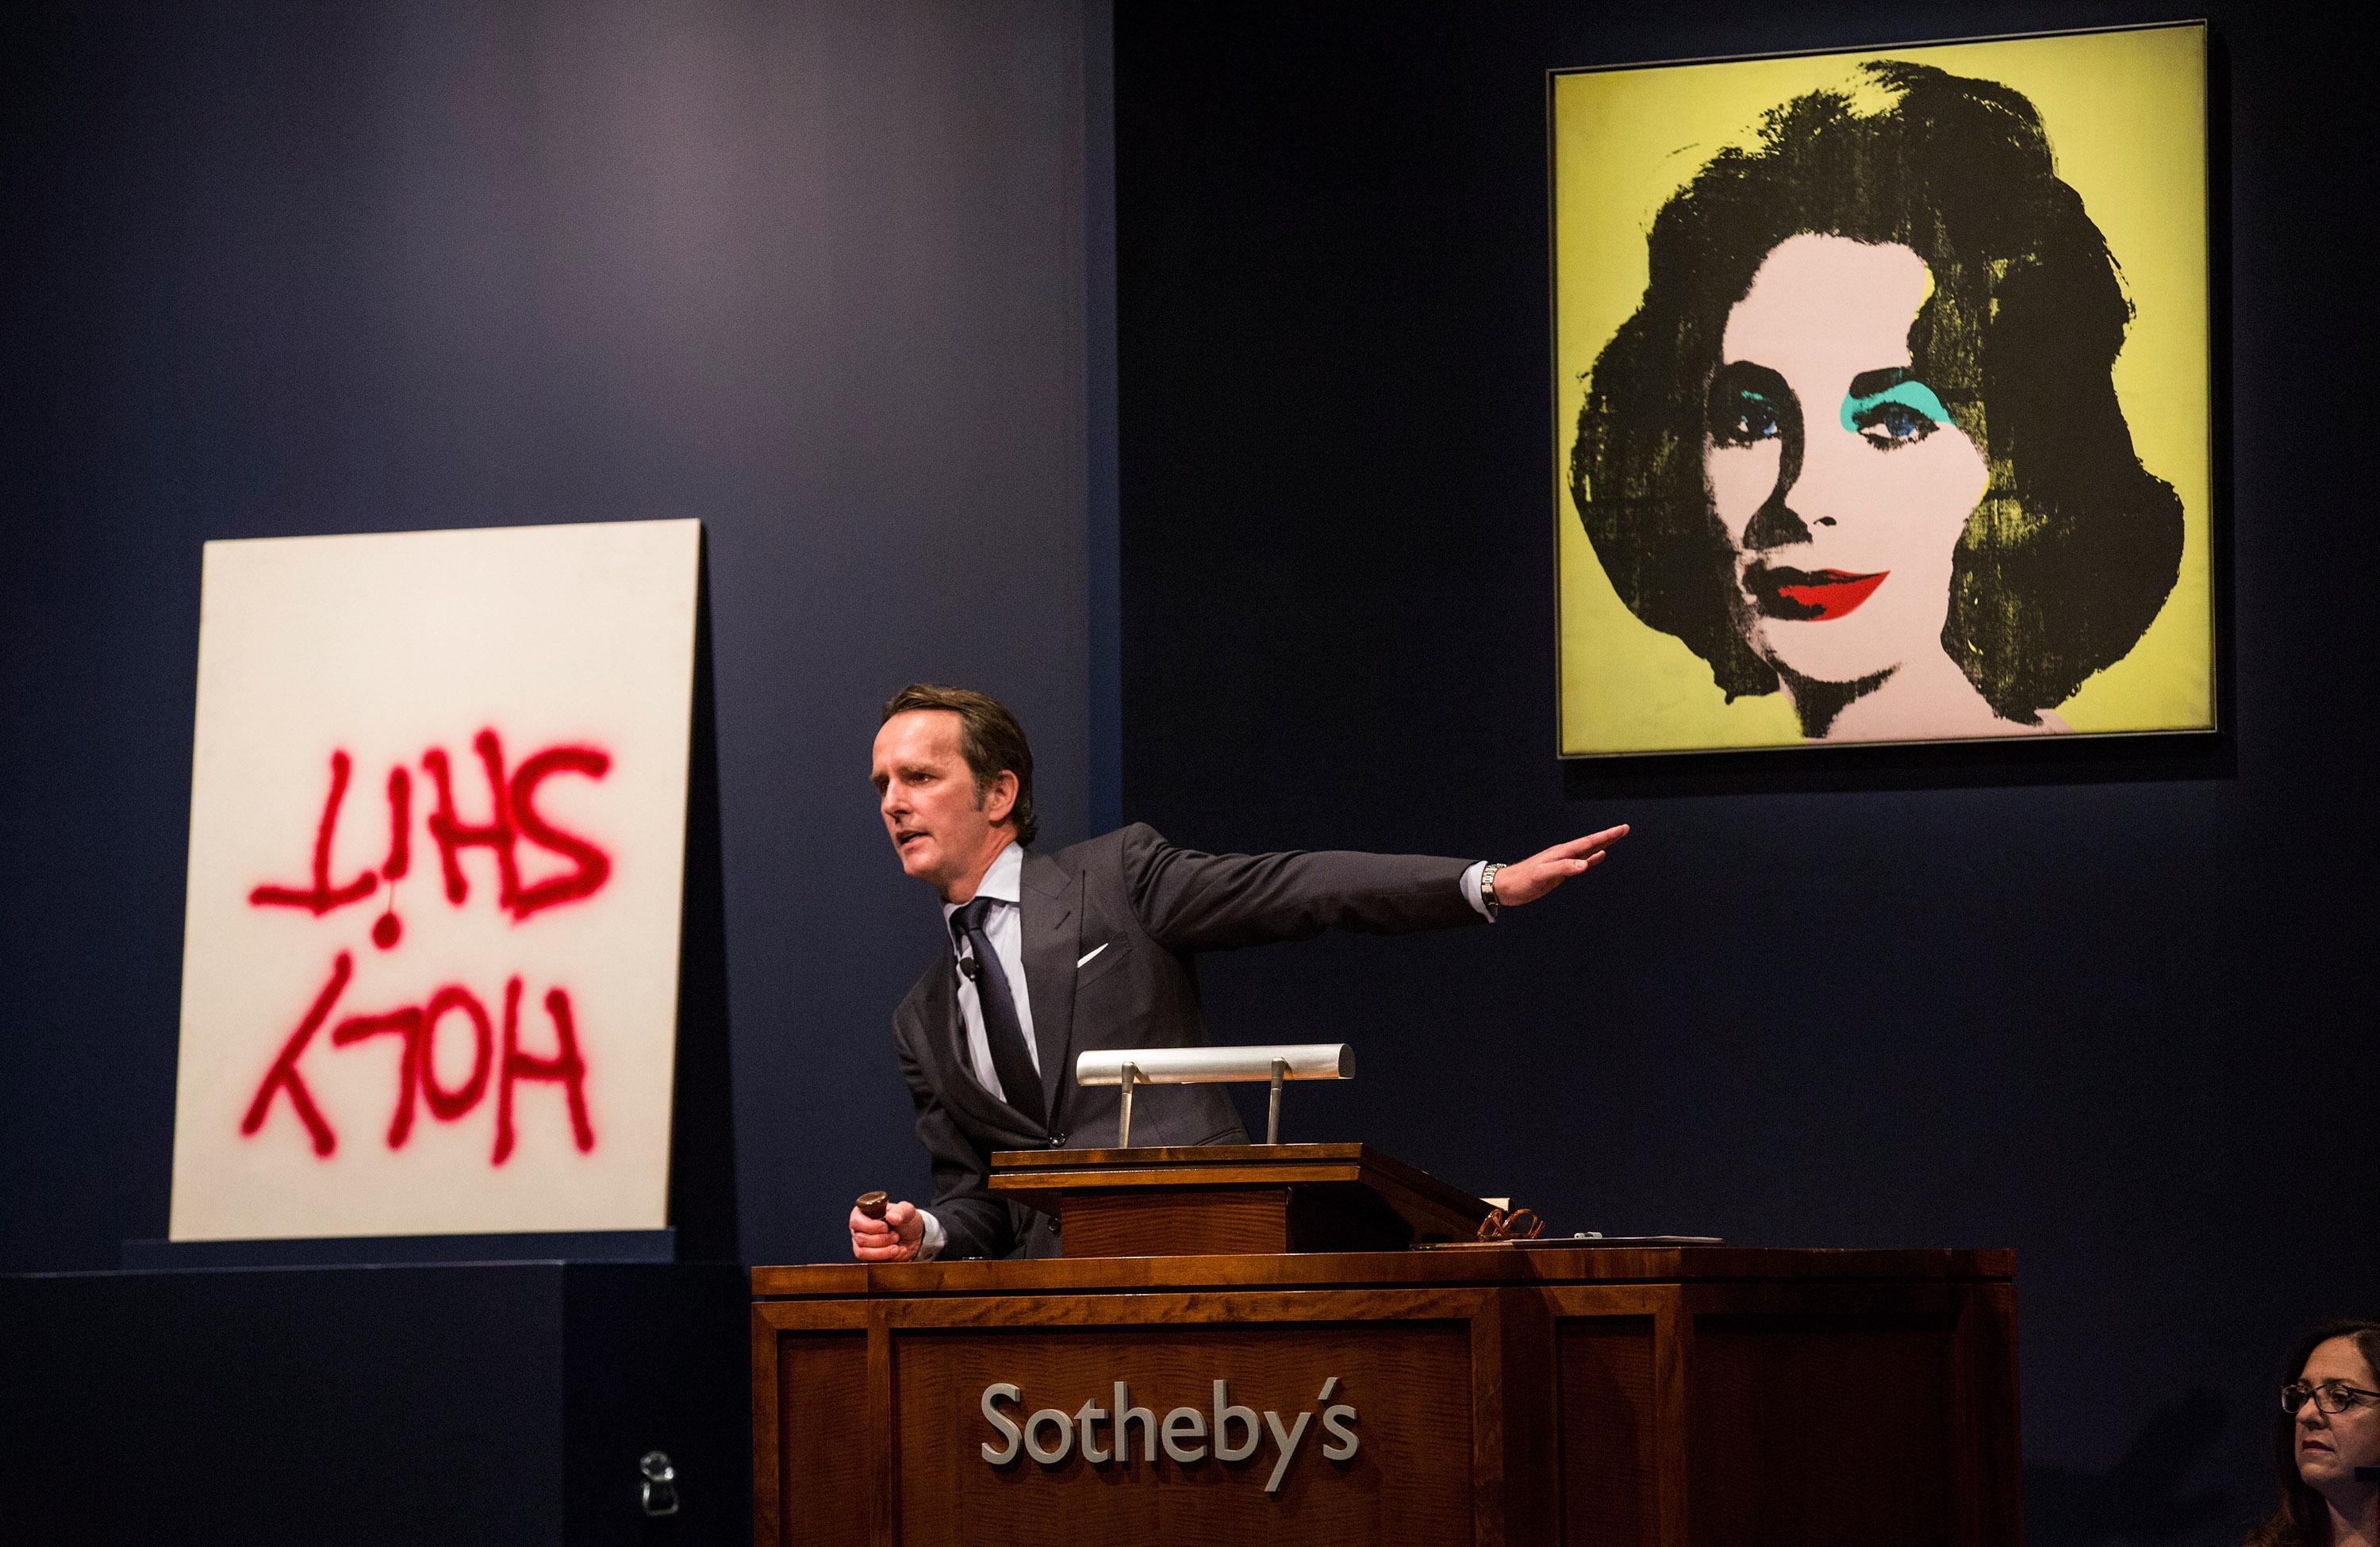 sothebys christies auction house scandal - HD3000×1950